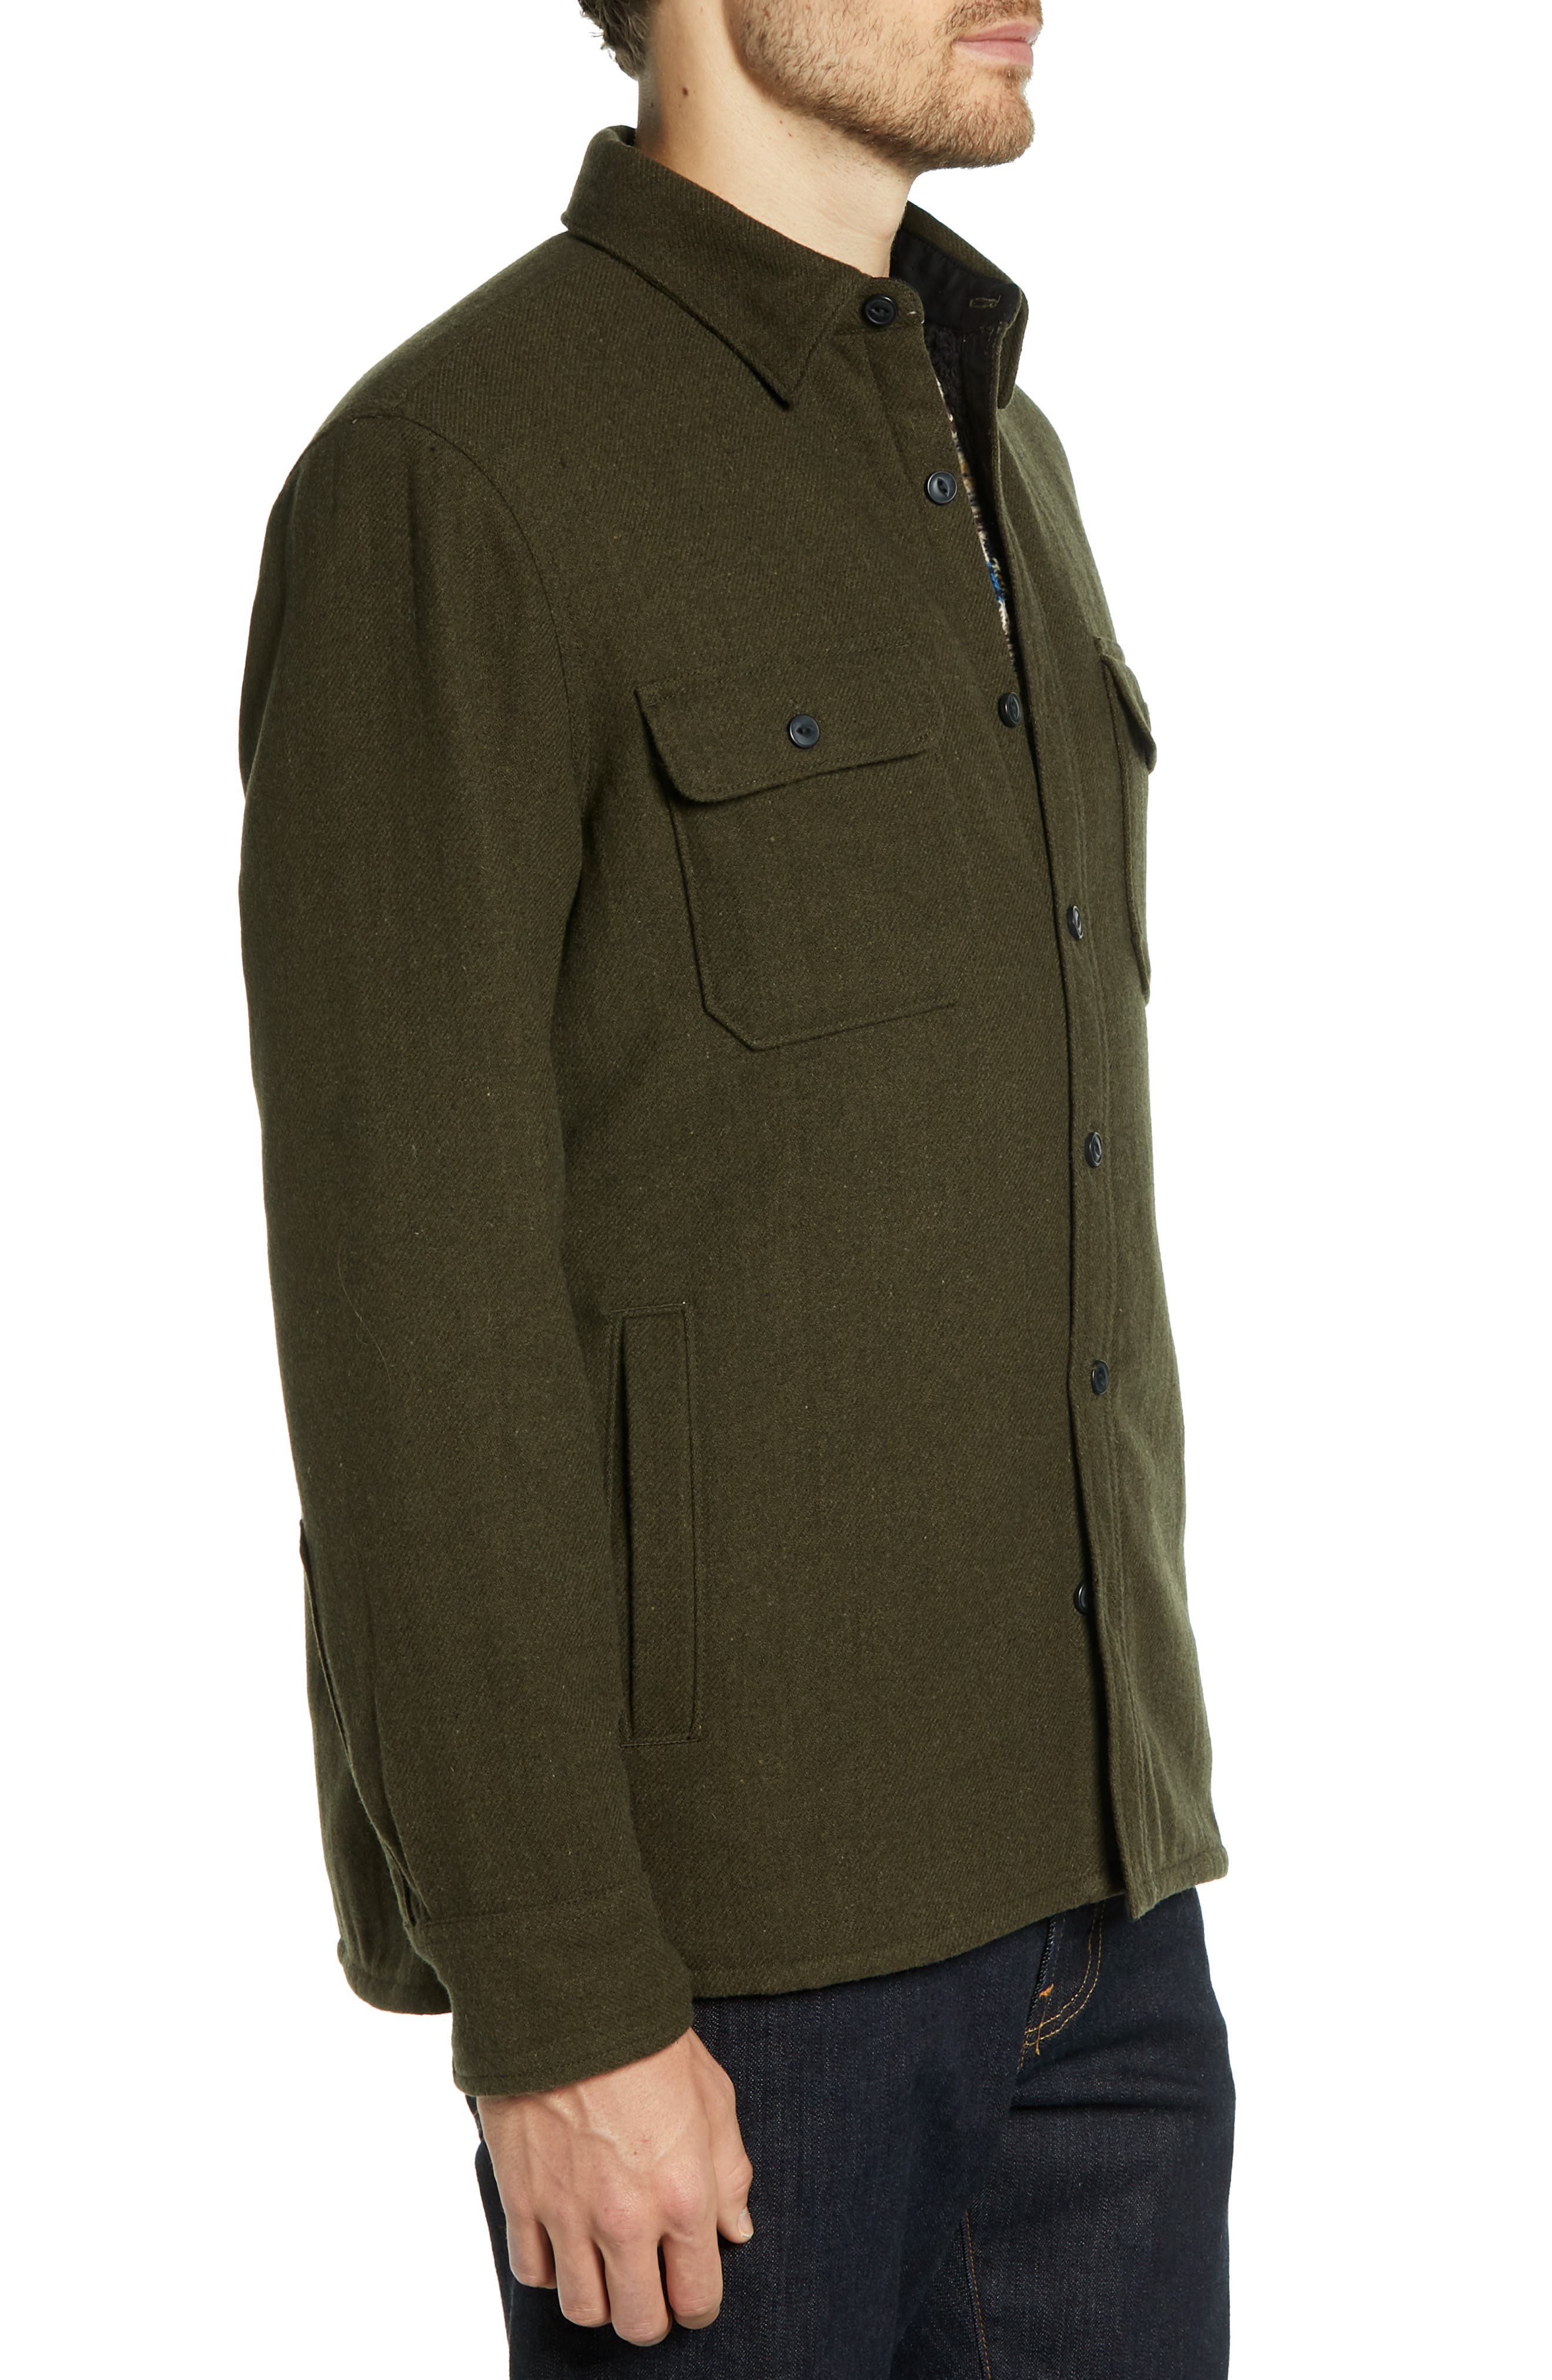 Lined Wool Blend Shirt Jacket,                             Alternate thumbnail 3, color,                             GREEN FOREST HEATHER